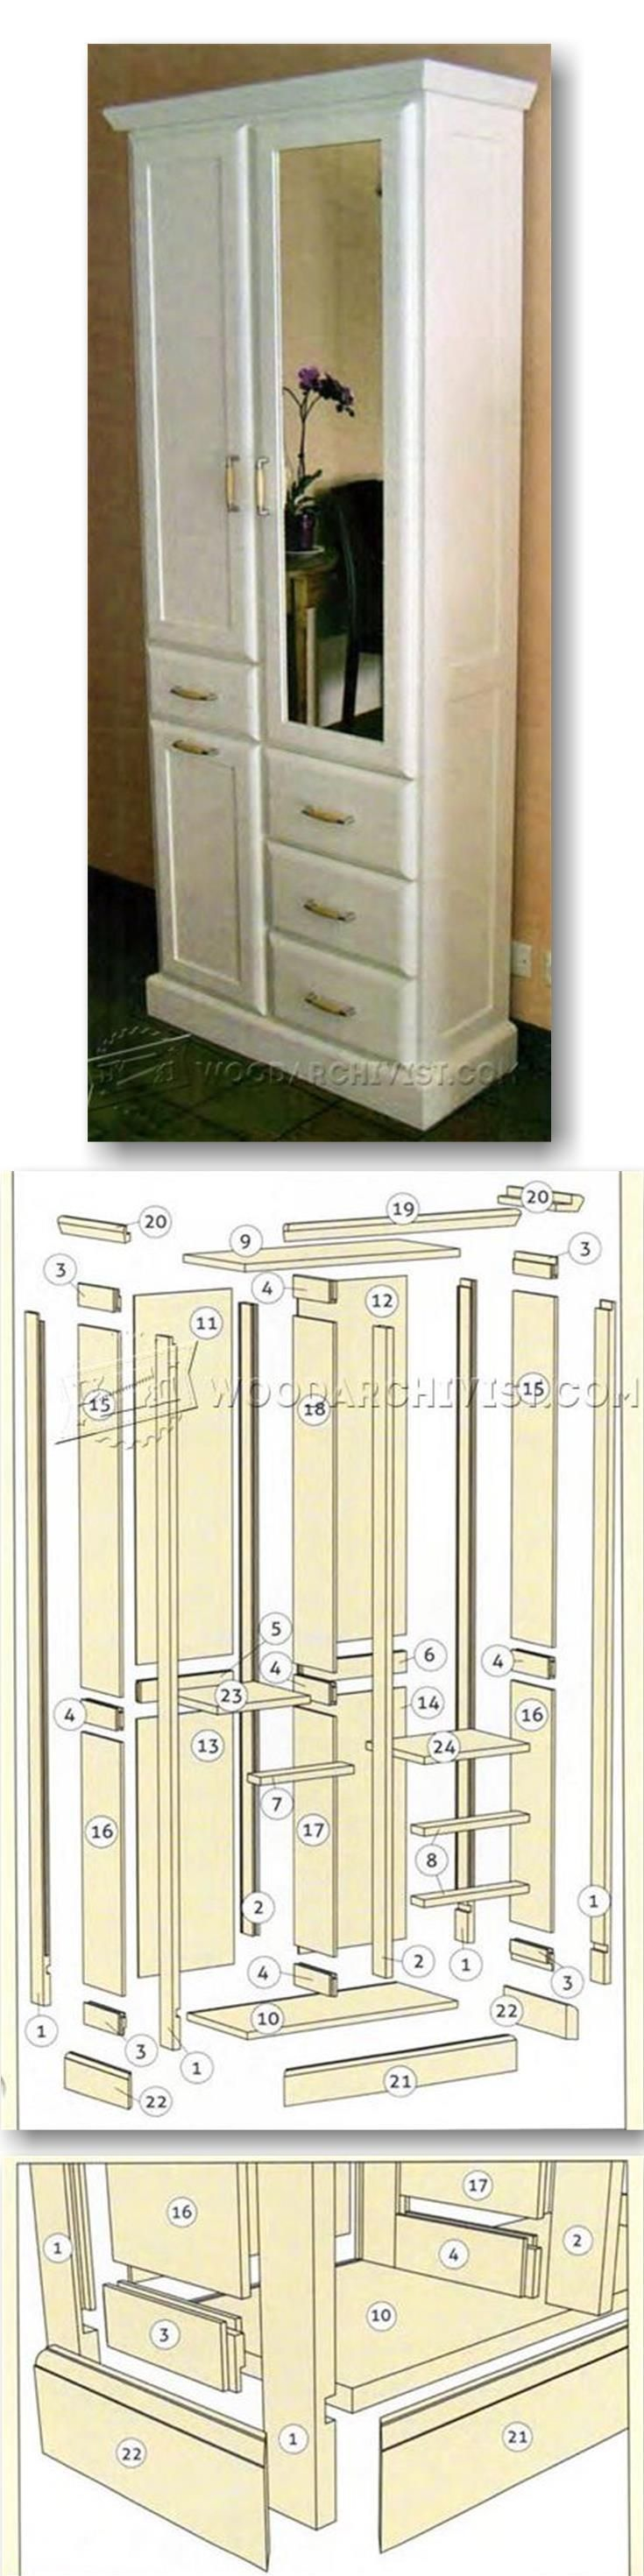 Hall Cupboard Plans - Furniture Plans and Projects | WoodArchivist.com